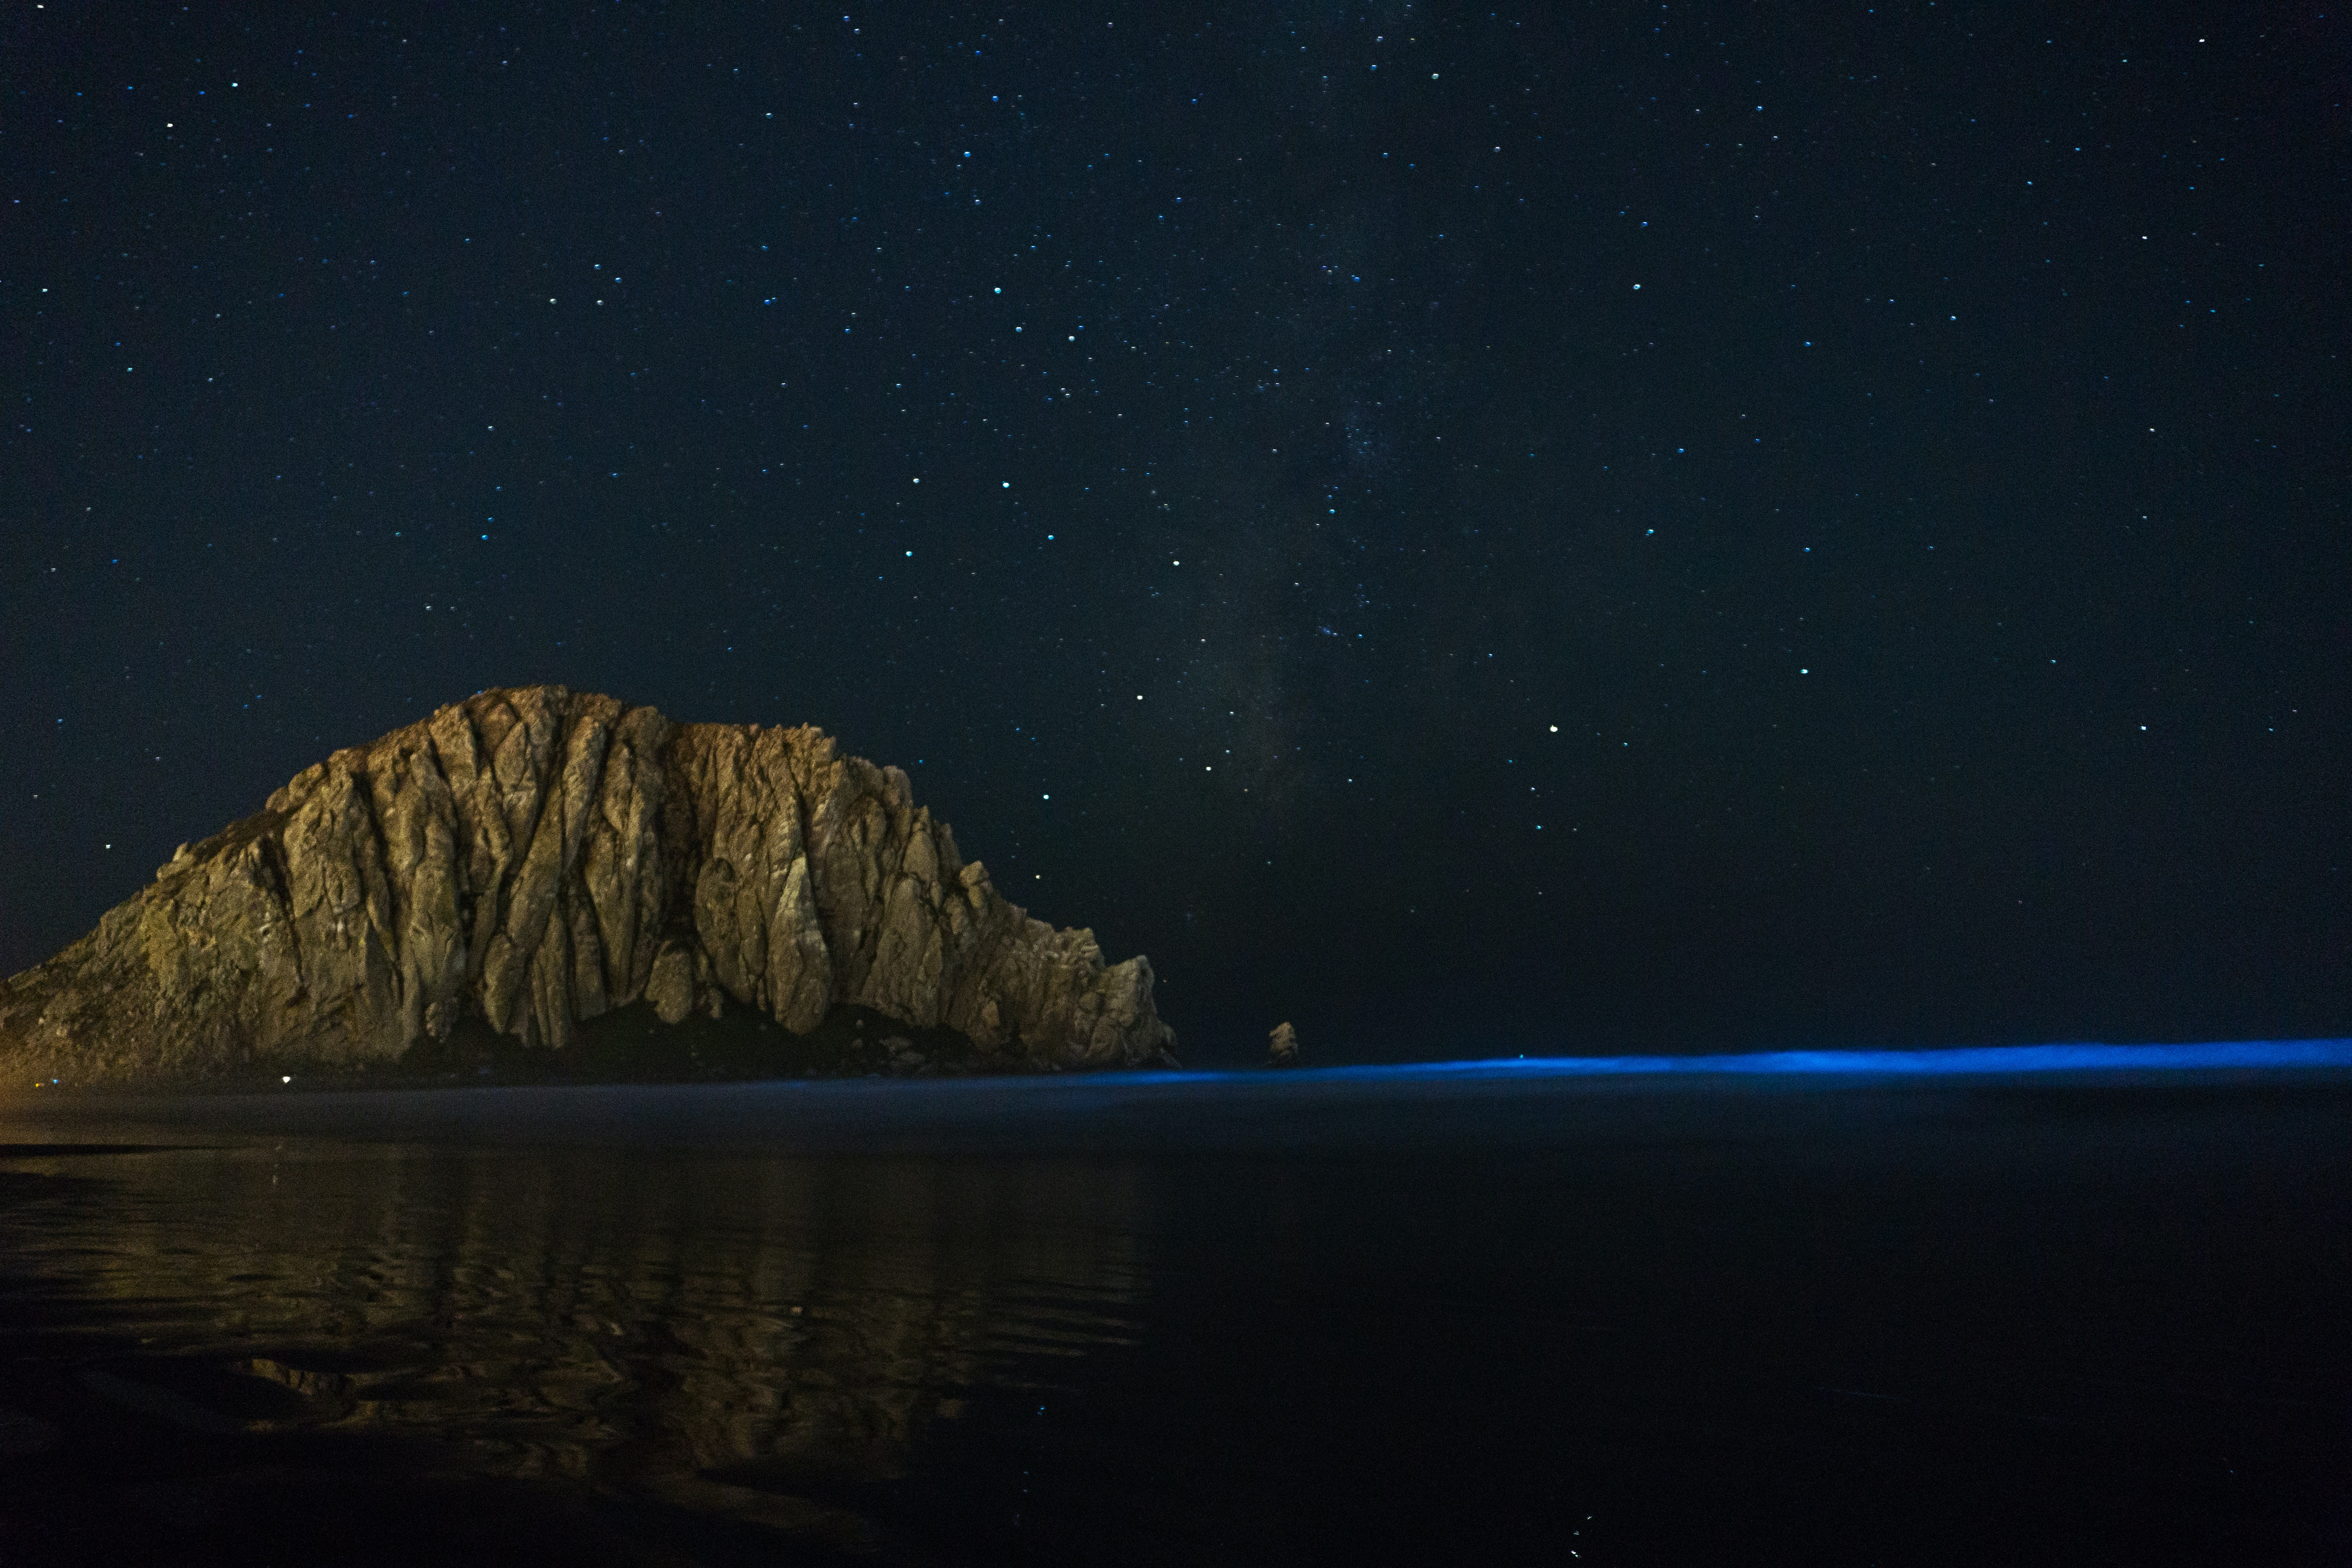 gray rock formation near sea at nighttime